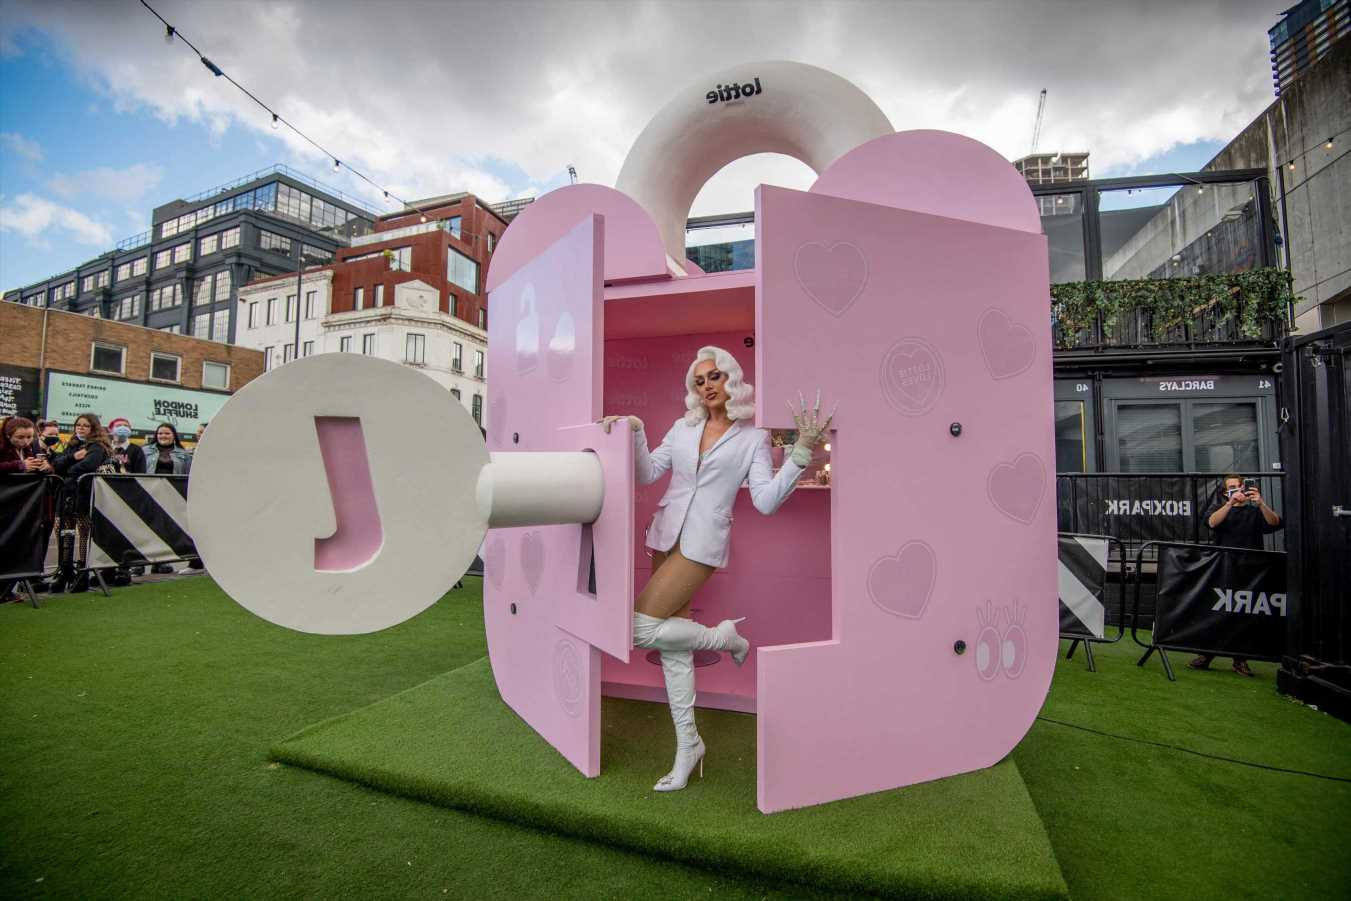 RuPaul's Drag Race star A'Whora bursts out of giant padlock in London to celebrate lockdown easing